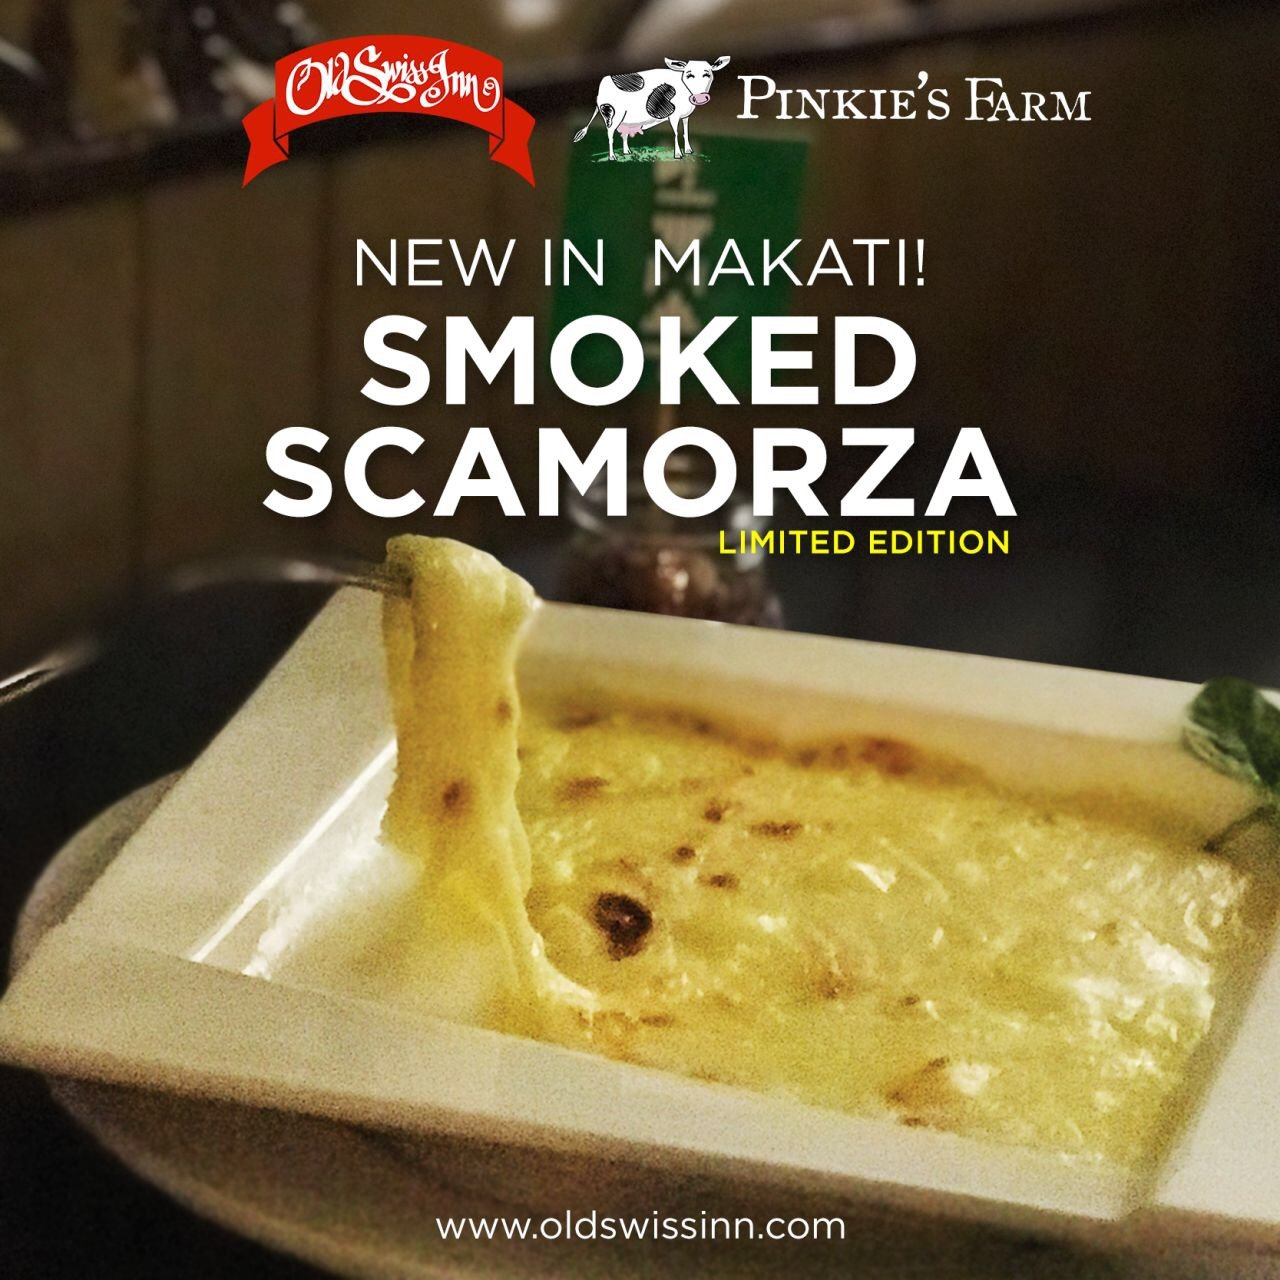 Smoked Scamorza Limited Edition